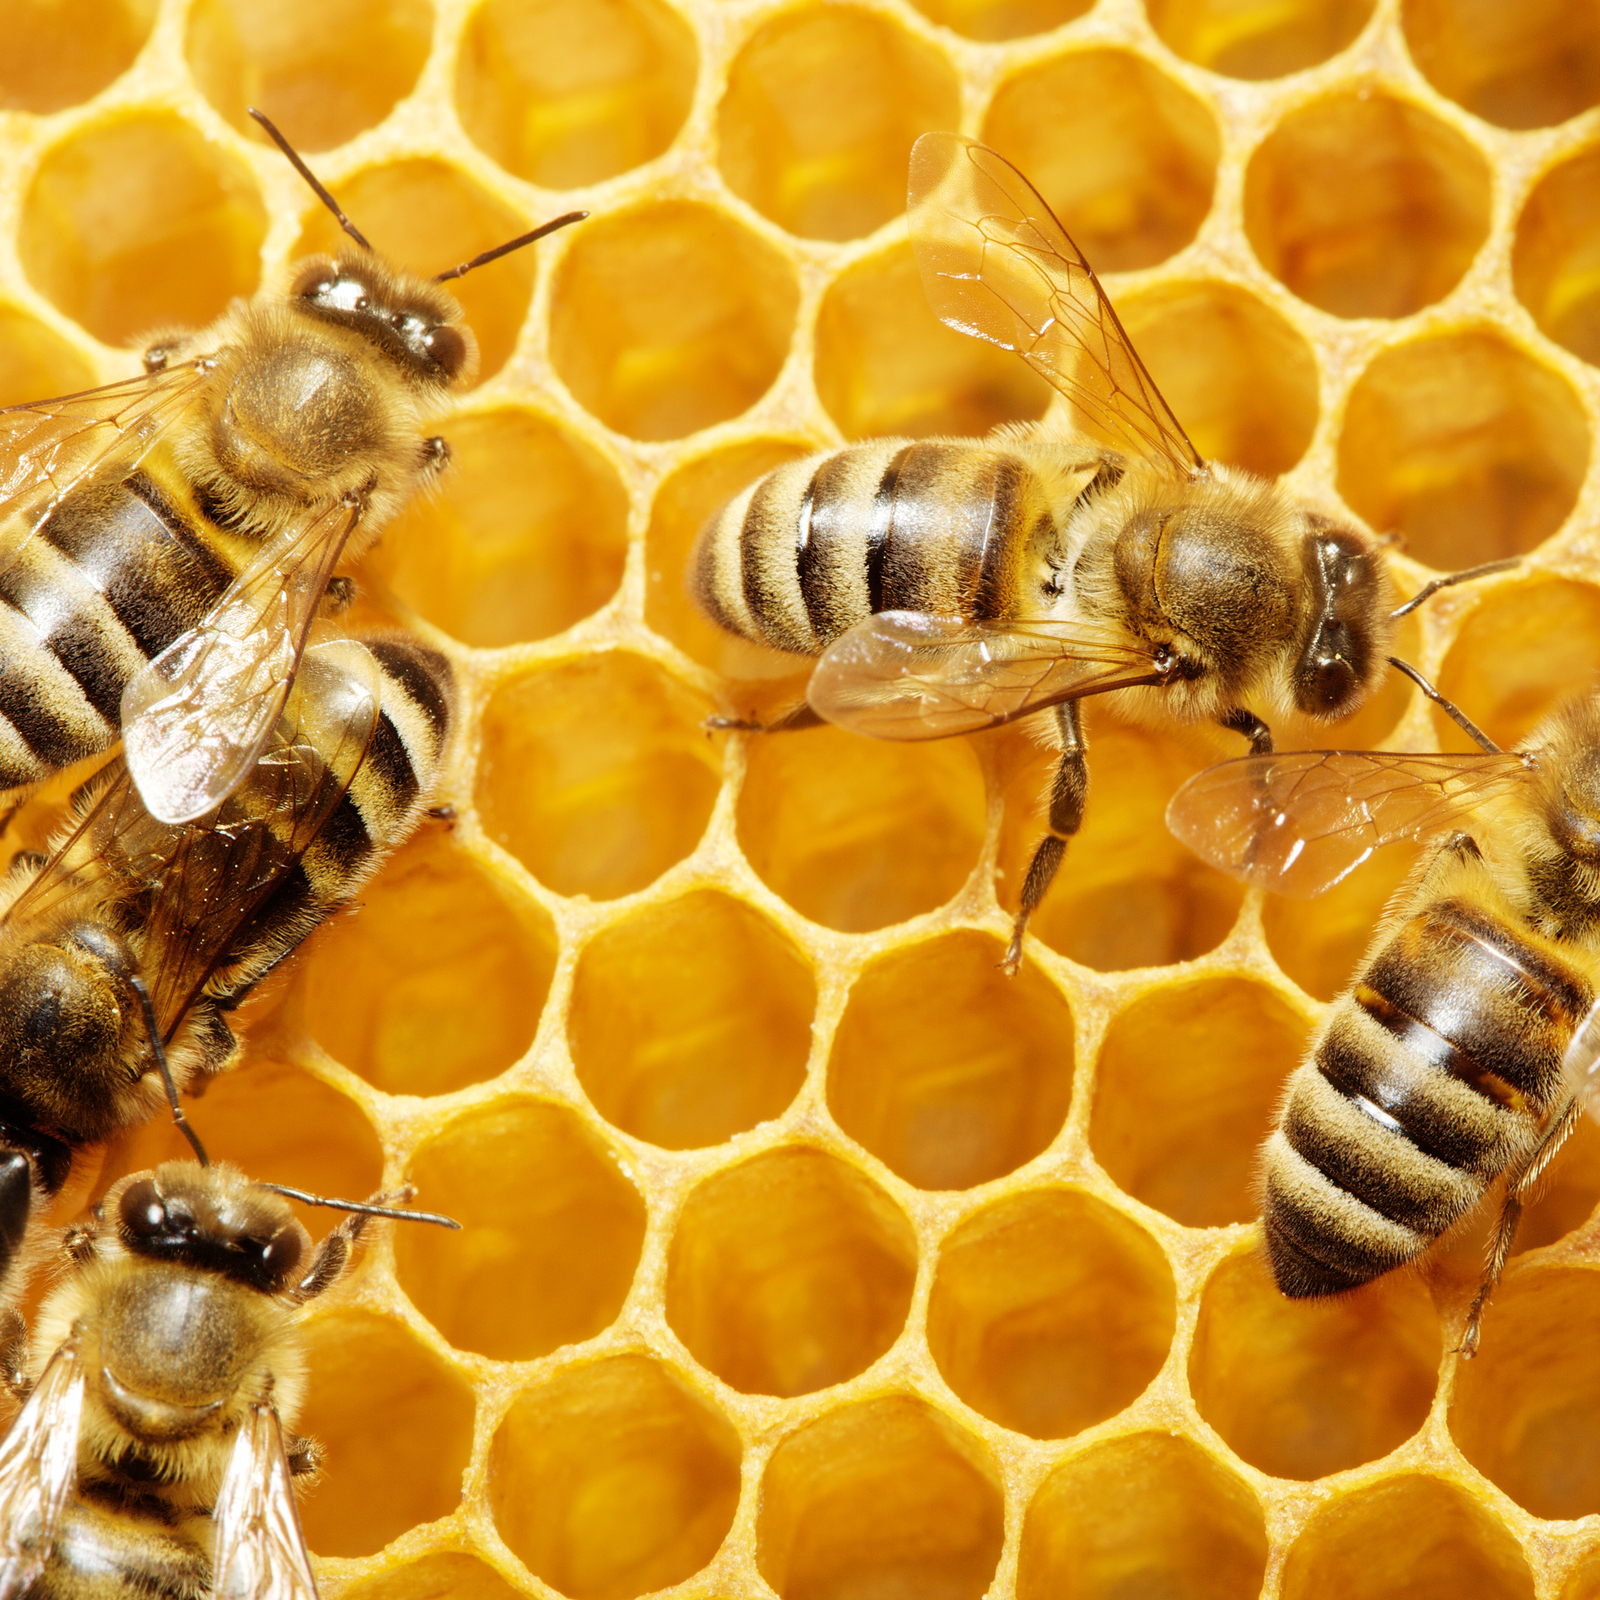 Pesticide in Del Mar is killing honeybees